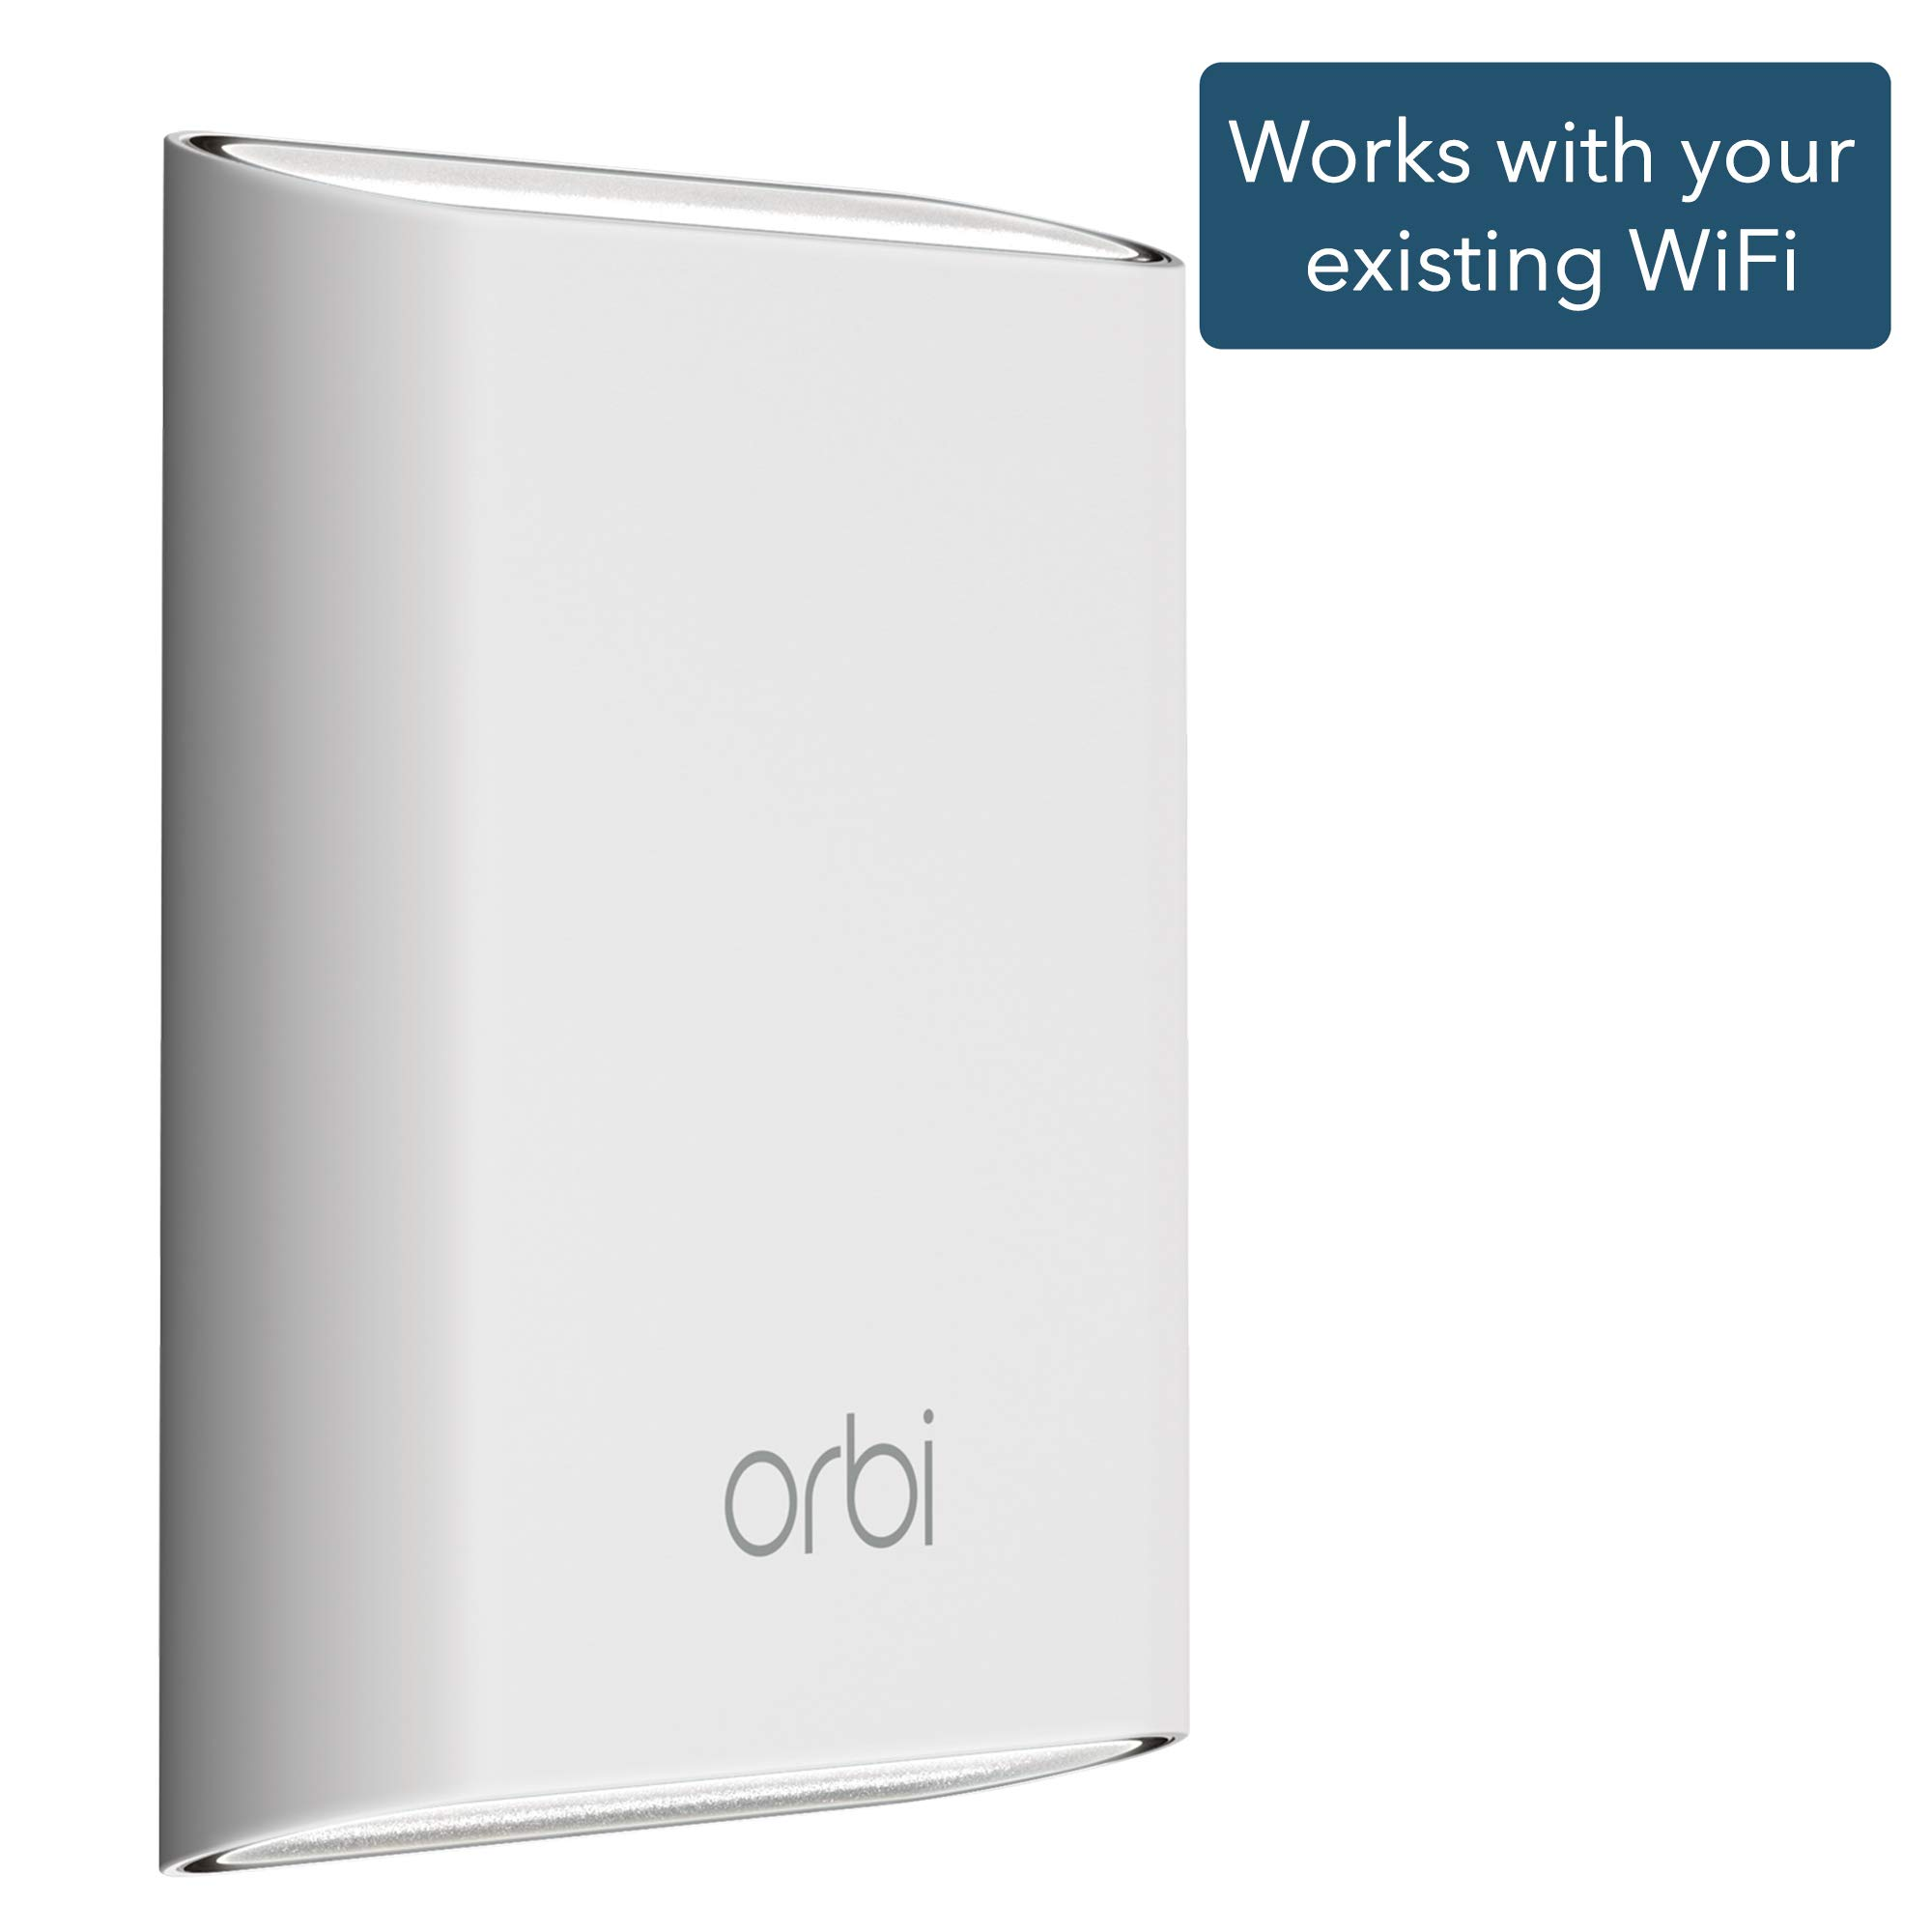 NETGEAR Orbi Outdoor WiFi Mesh Extender, works with your existing WiFi router (RBS50Y) by NETGEAR